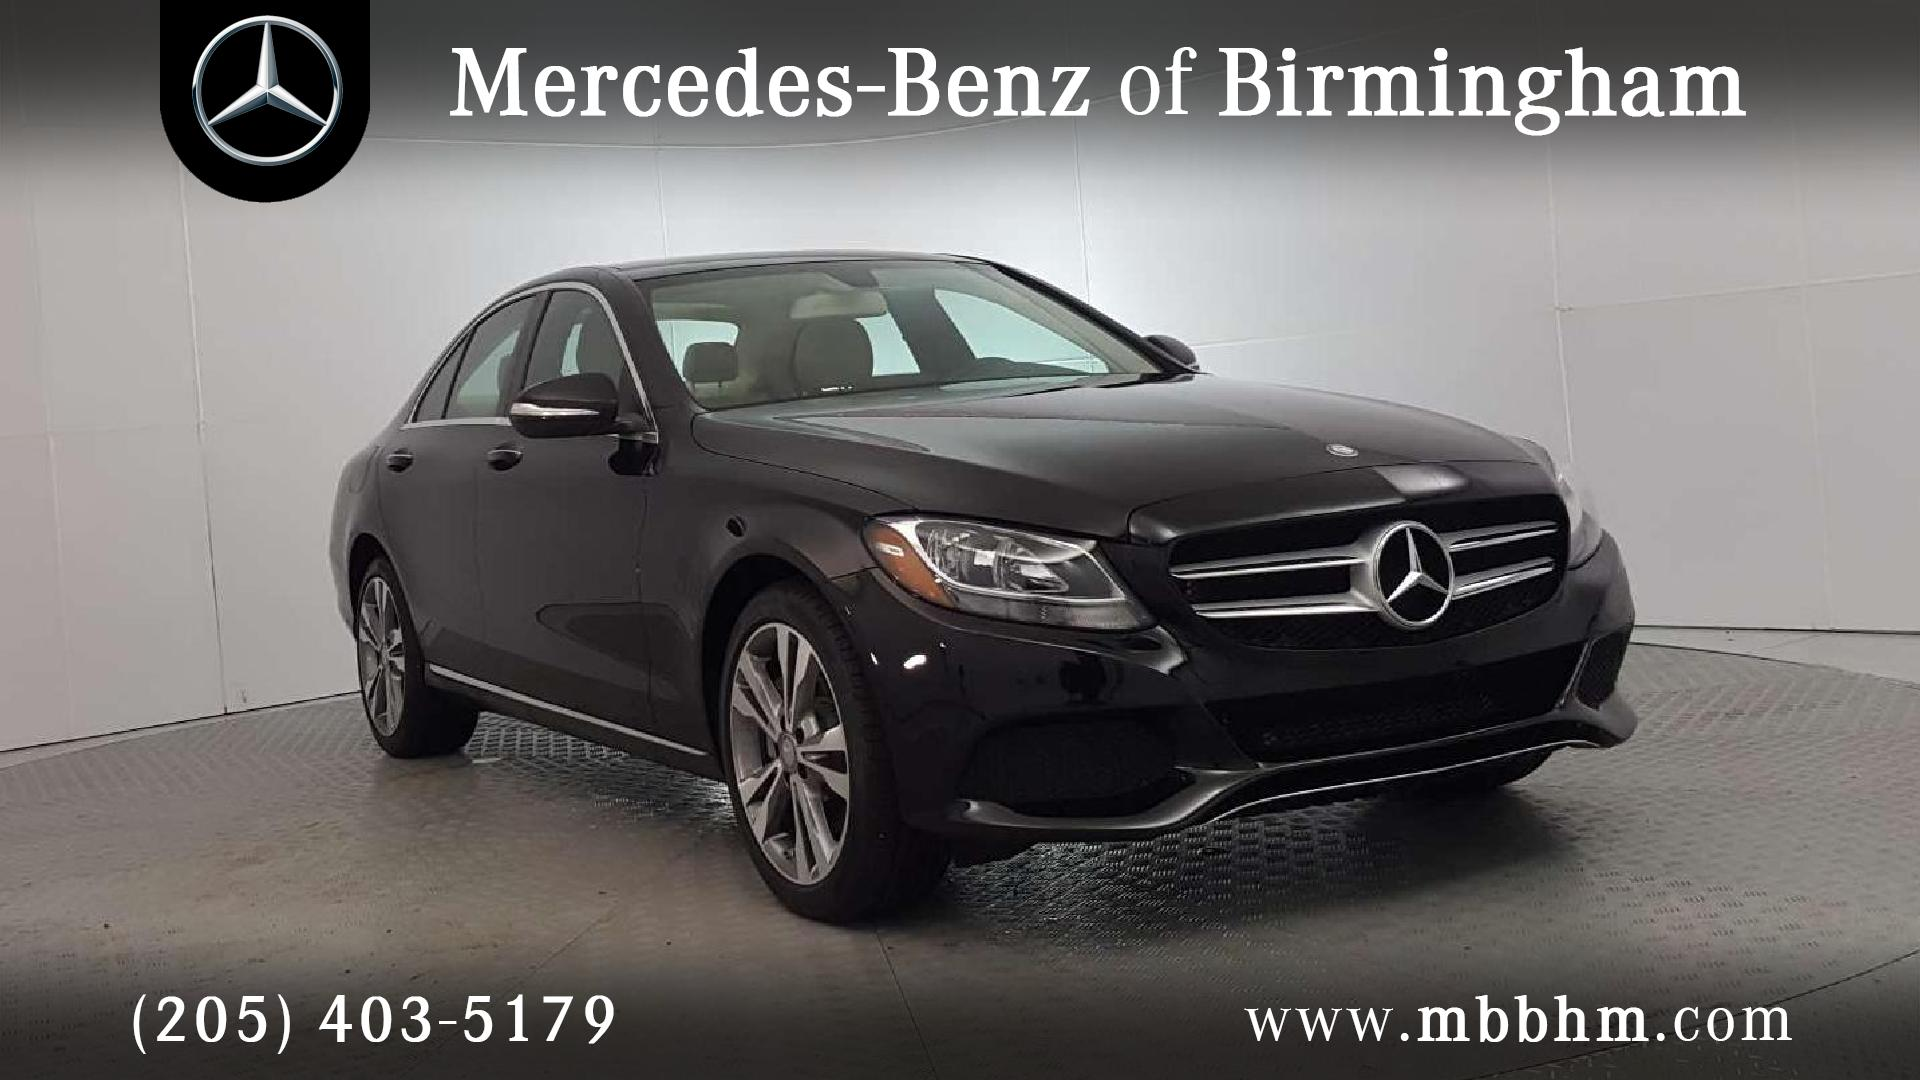 Certified Pre Owned 2015 Mercedes Benz C Class 300 4D Sedan In